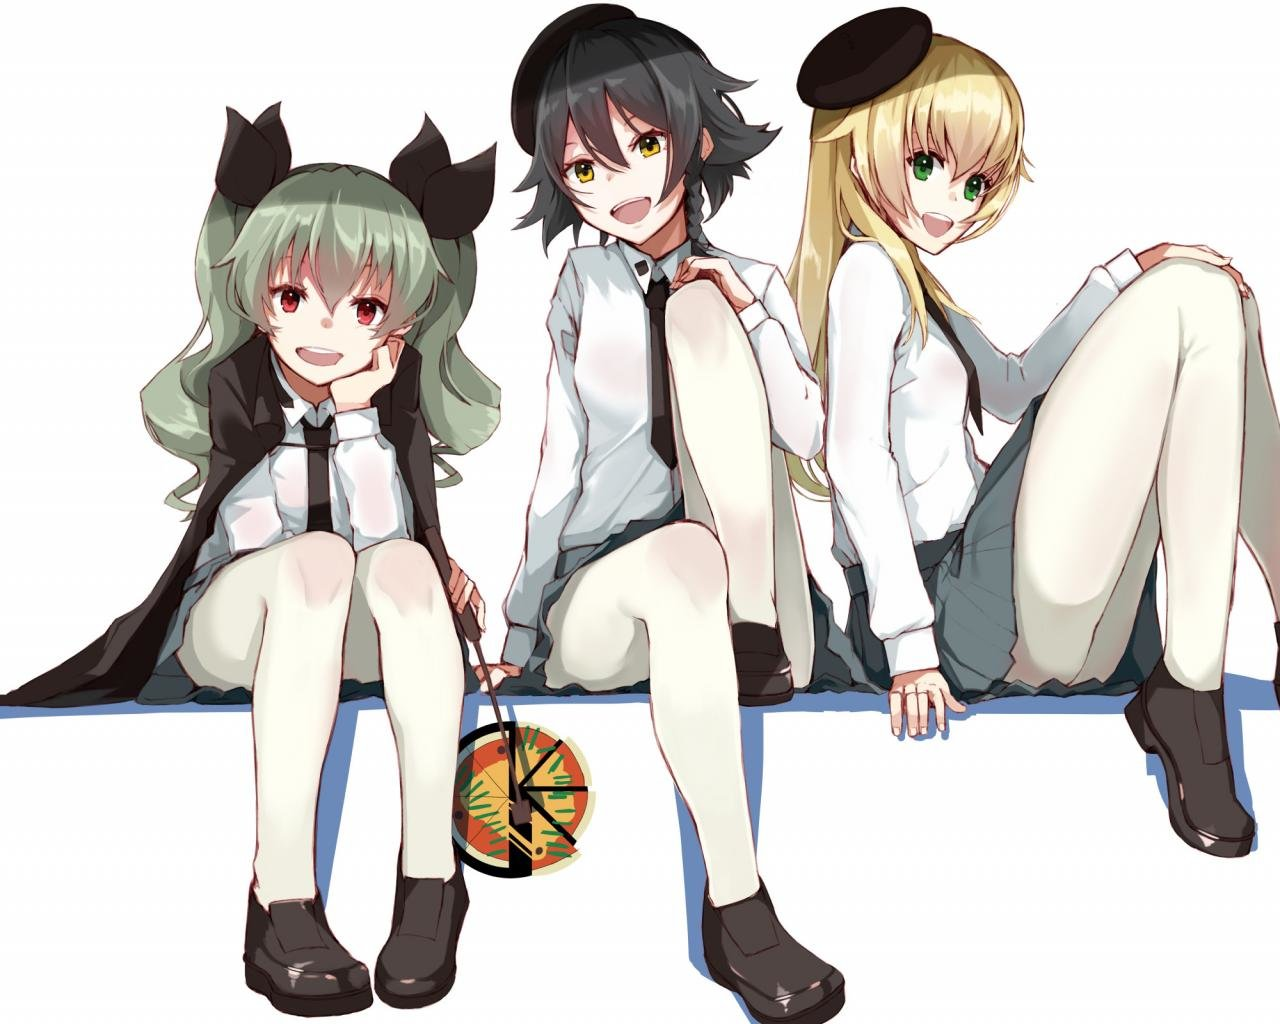 Best Girls Und Panzer background ID:208312 for High Resolution hd 1280x1024 desktop